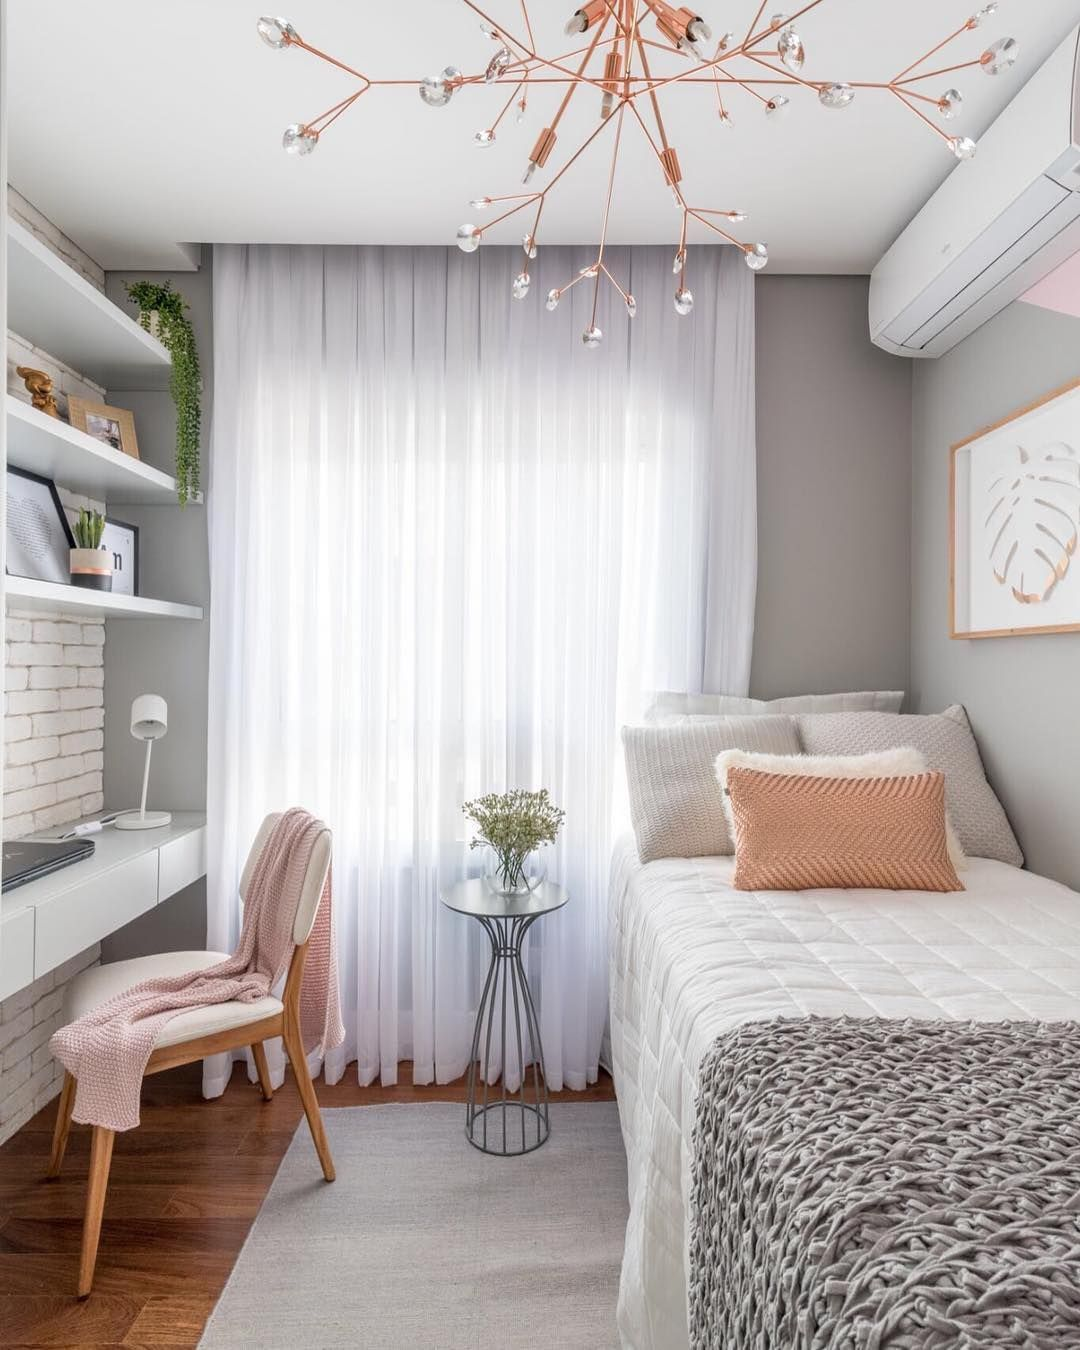 This Is A Small Bedroom Ideas Tips To Help You Create A Bedroom Space That May Be Small In Square Footage Bu Small Bedroom Decor Woman Bedroom Small Bedroom